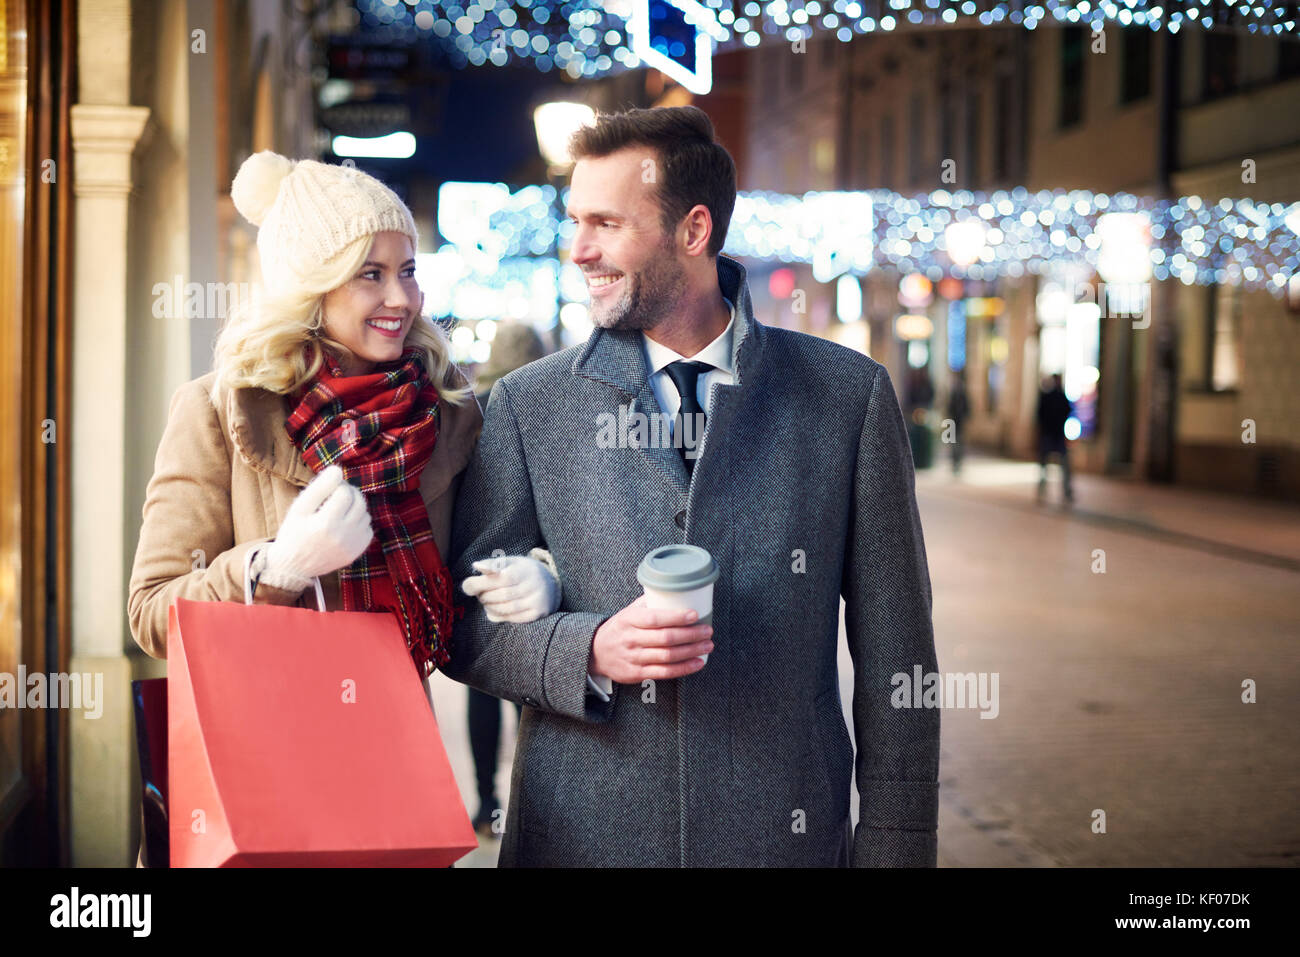 A Christmas Spirit.Christmas Spirit Shopping Is In Town Stock Photo 164119023